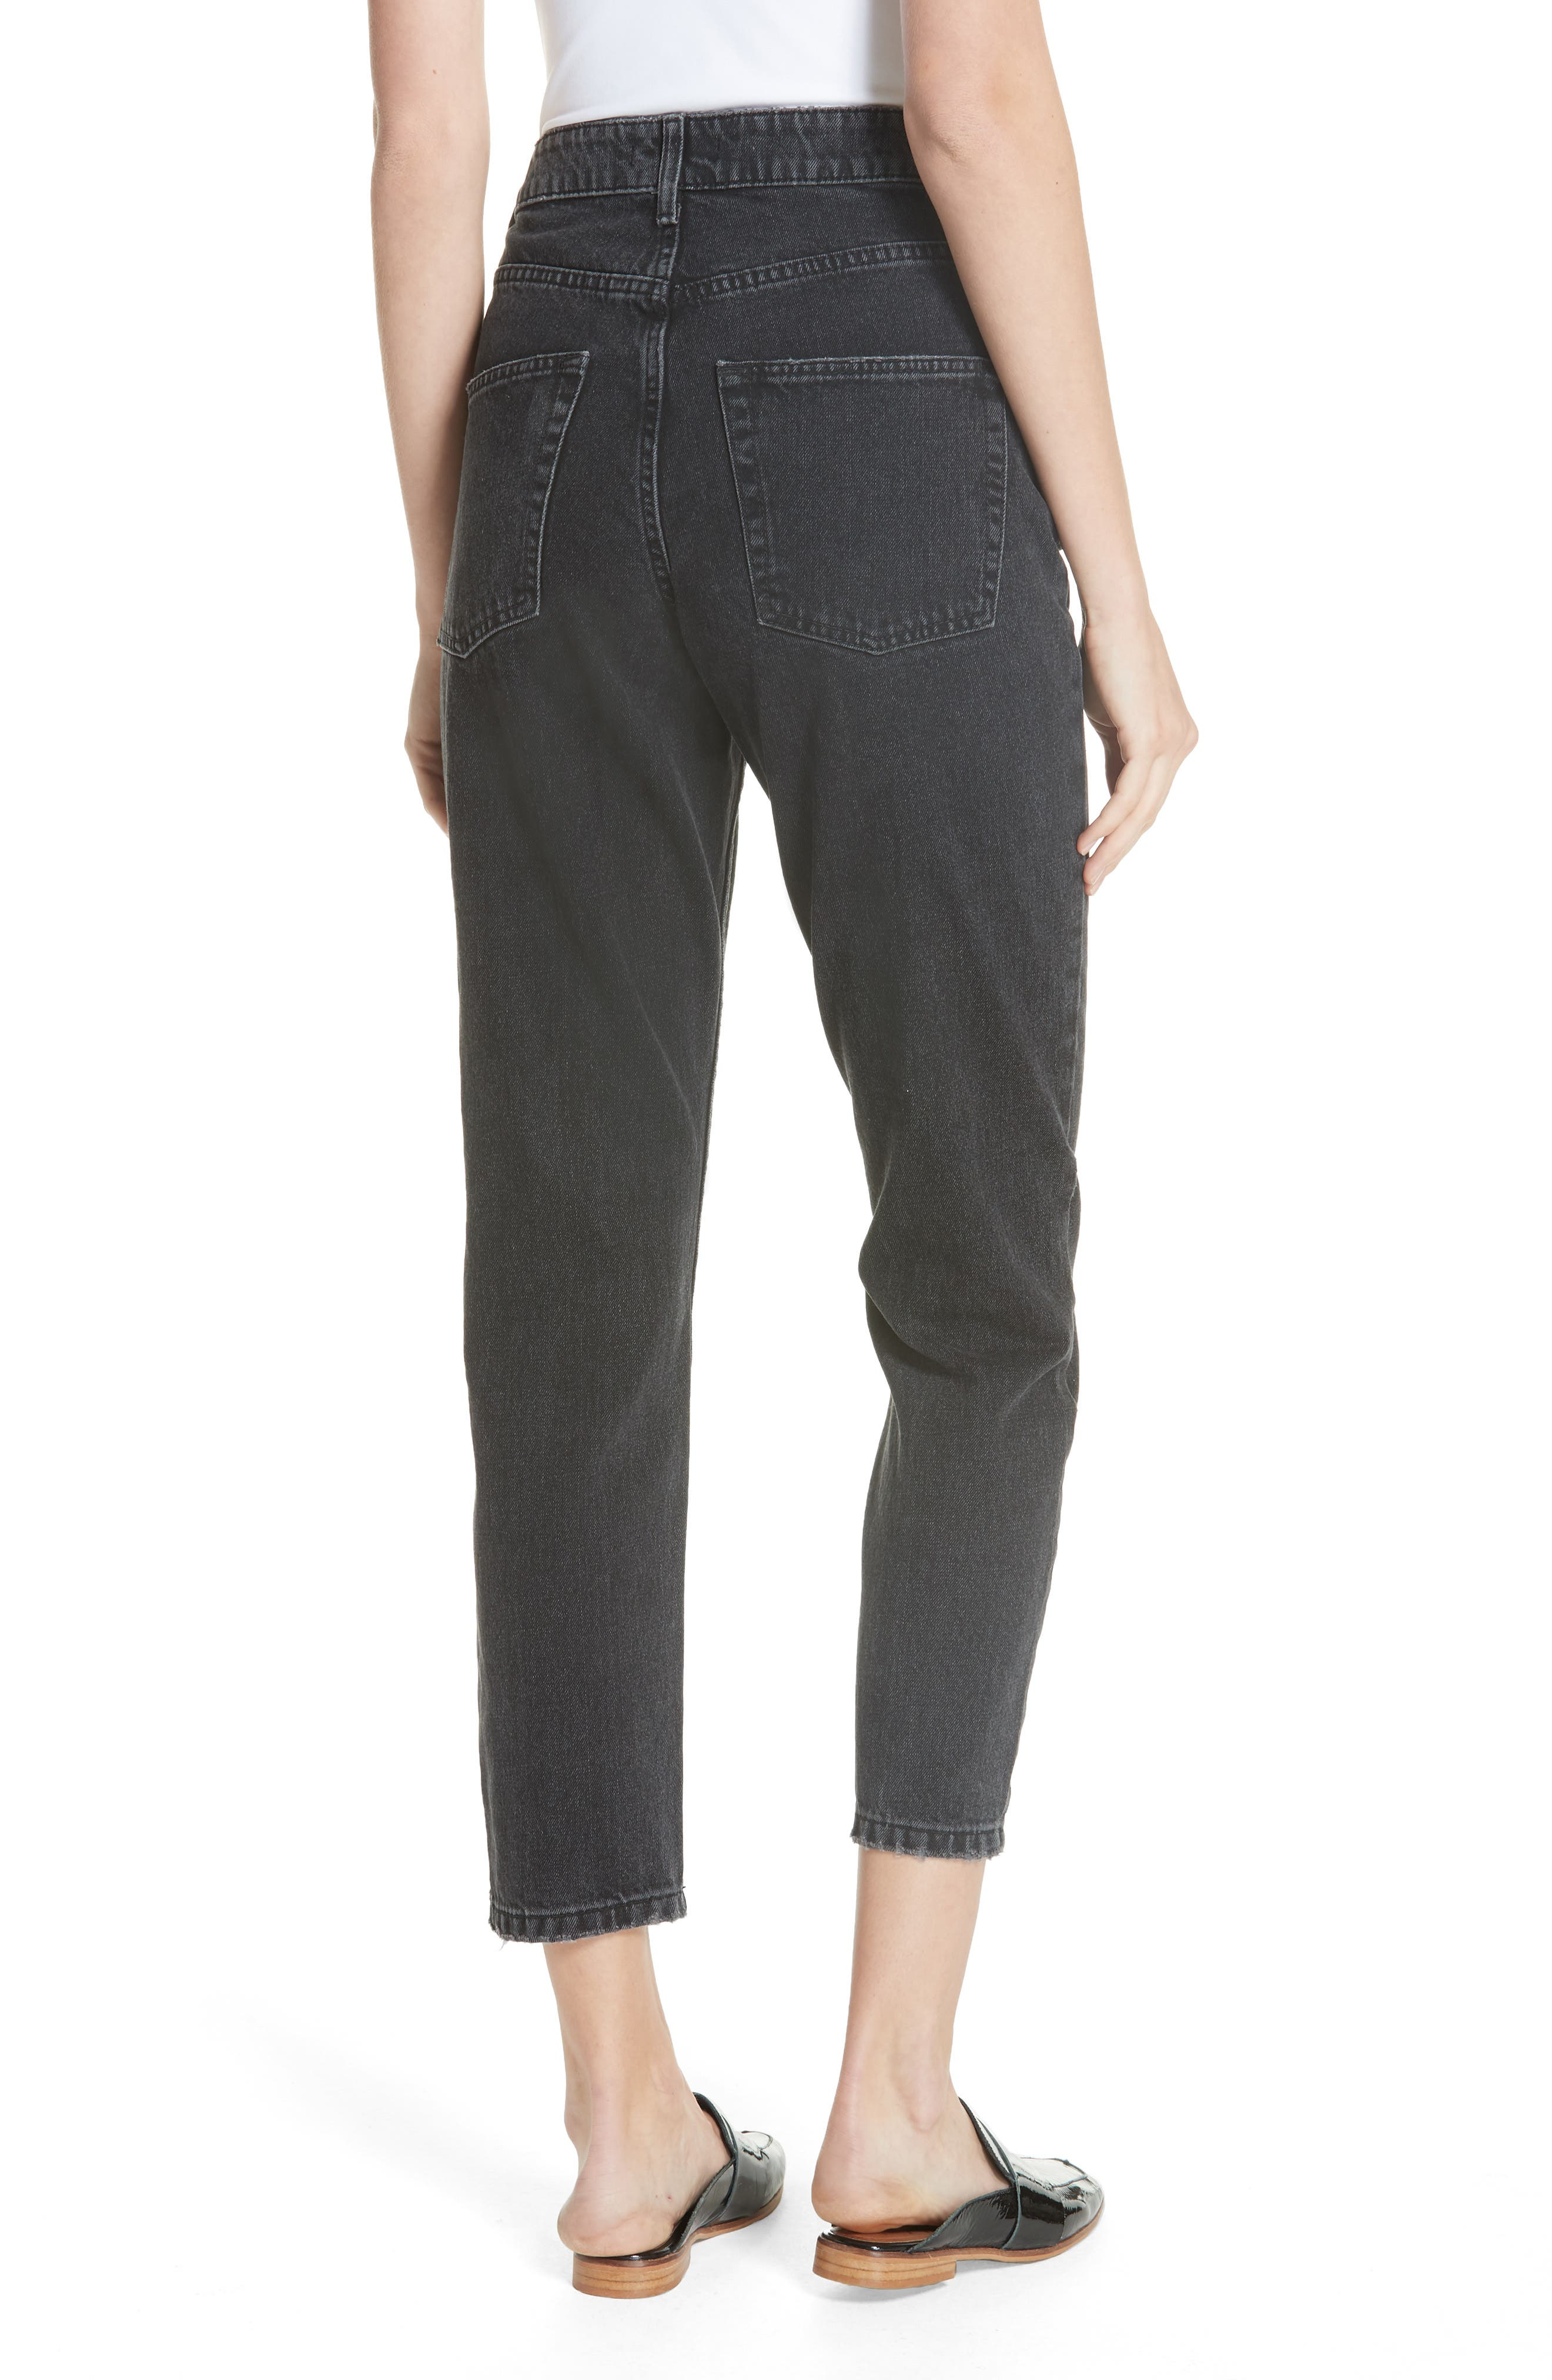 FREE PEOPLE, We the Free by Free People Mom Jeans, Alternate thumbnail 2, color, 001